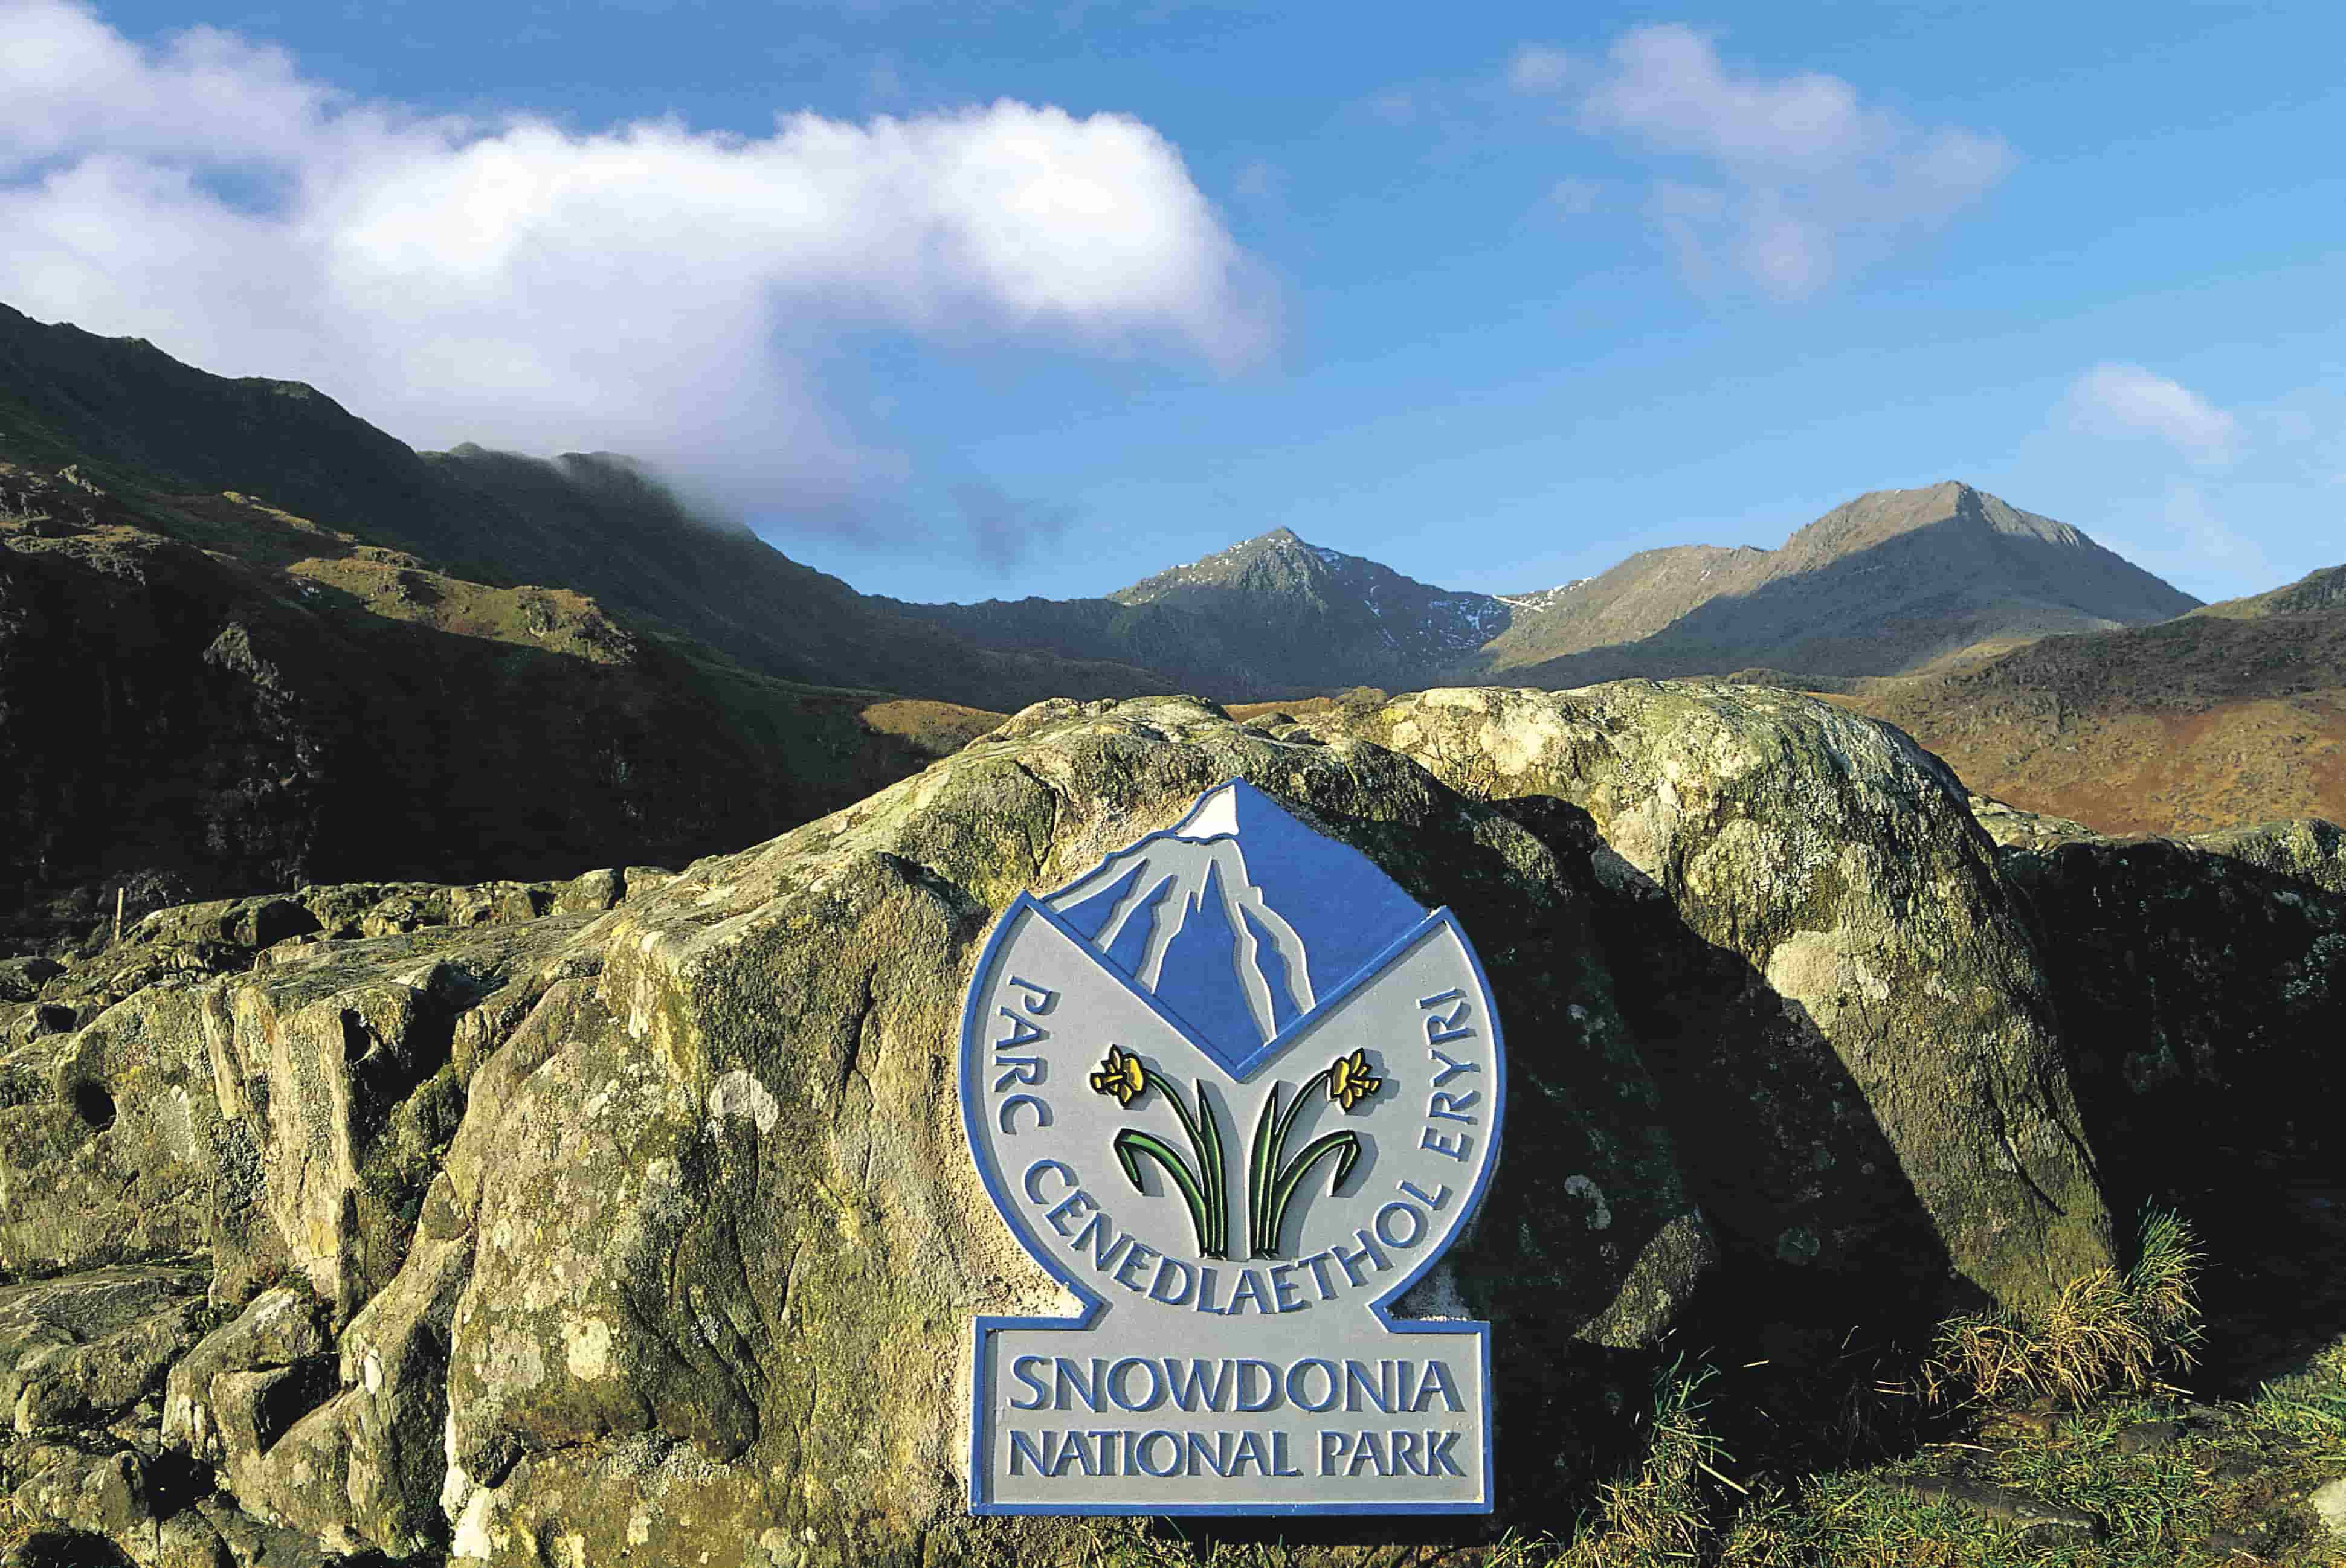 Snowdonia National Park plaque with views of the mountains